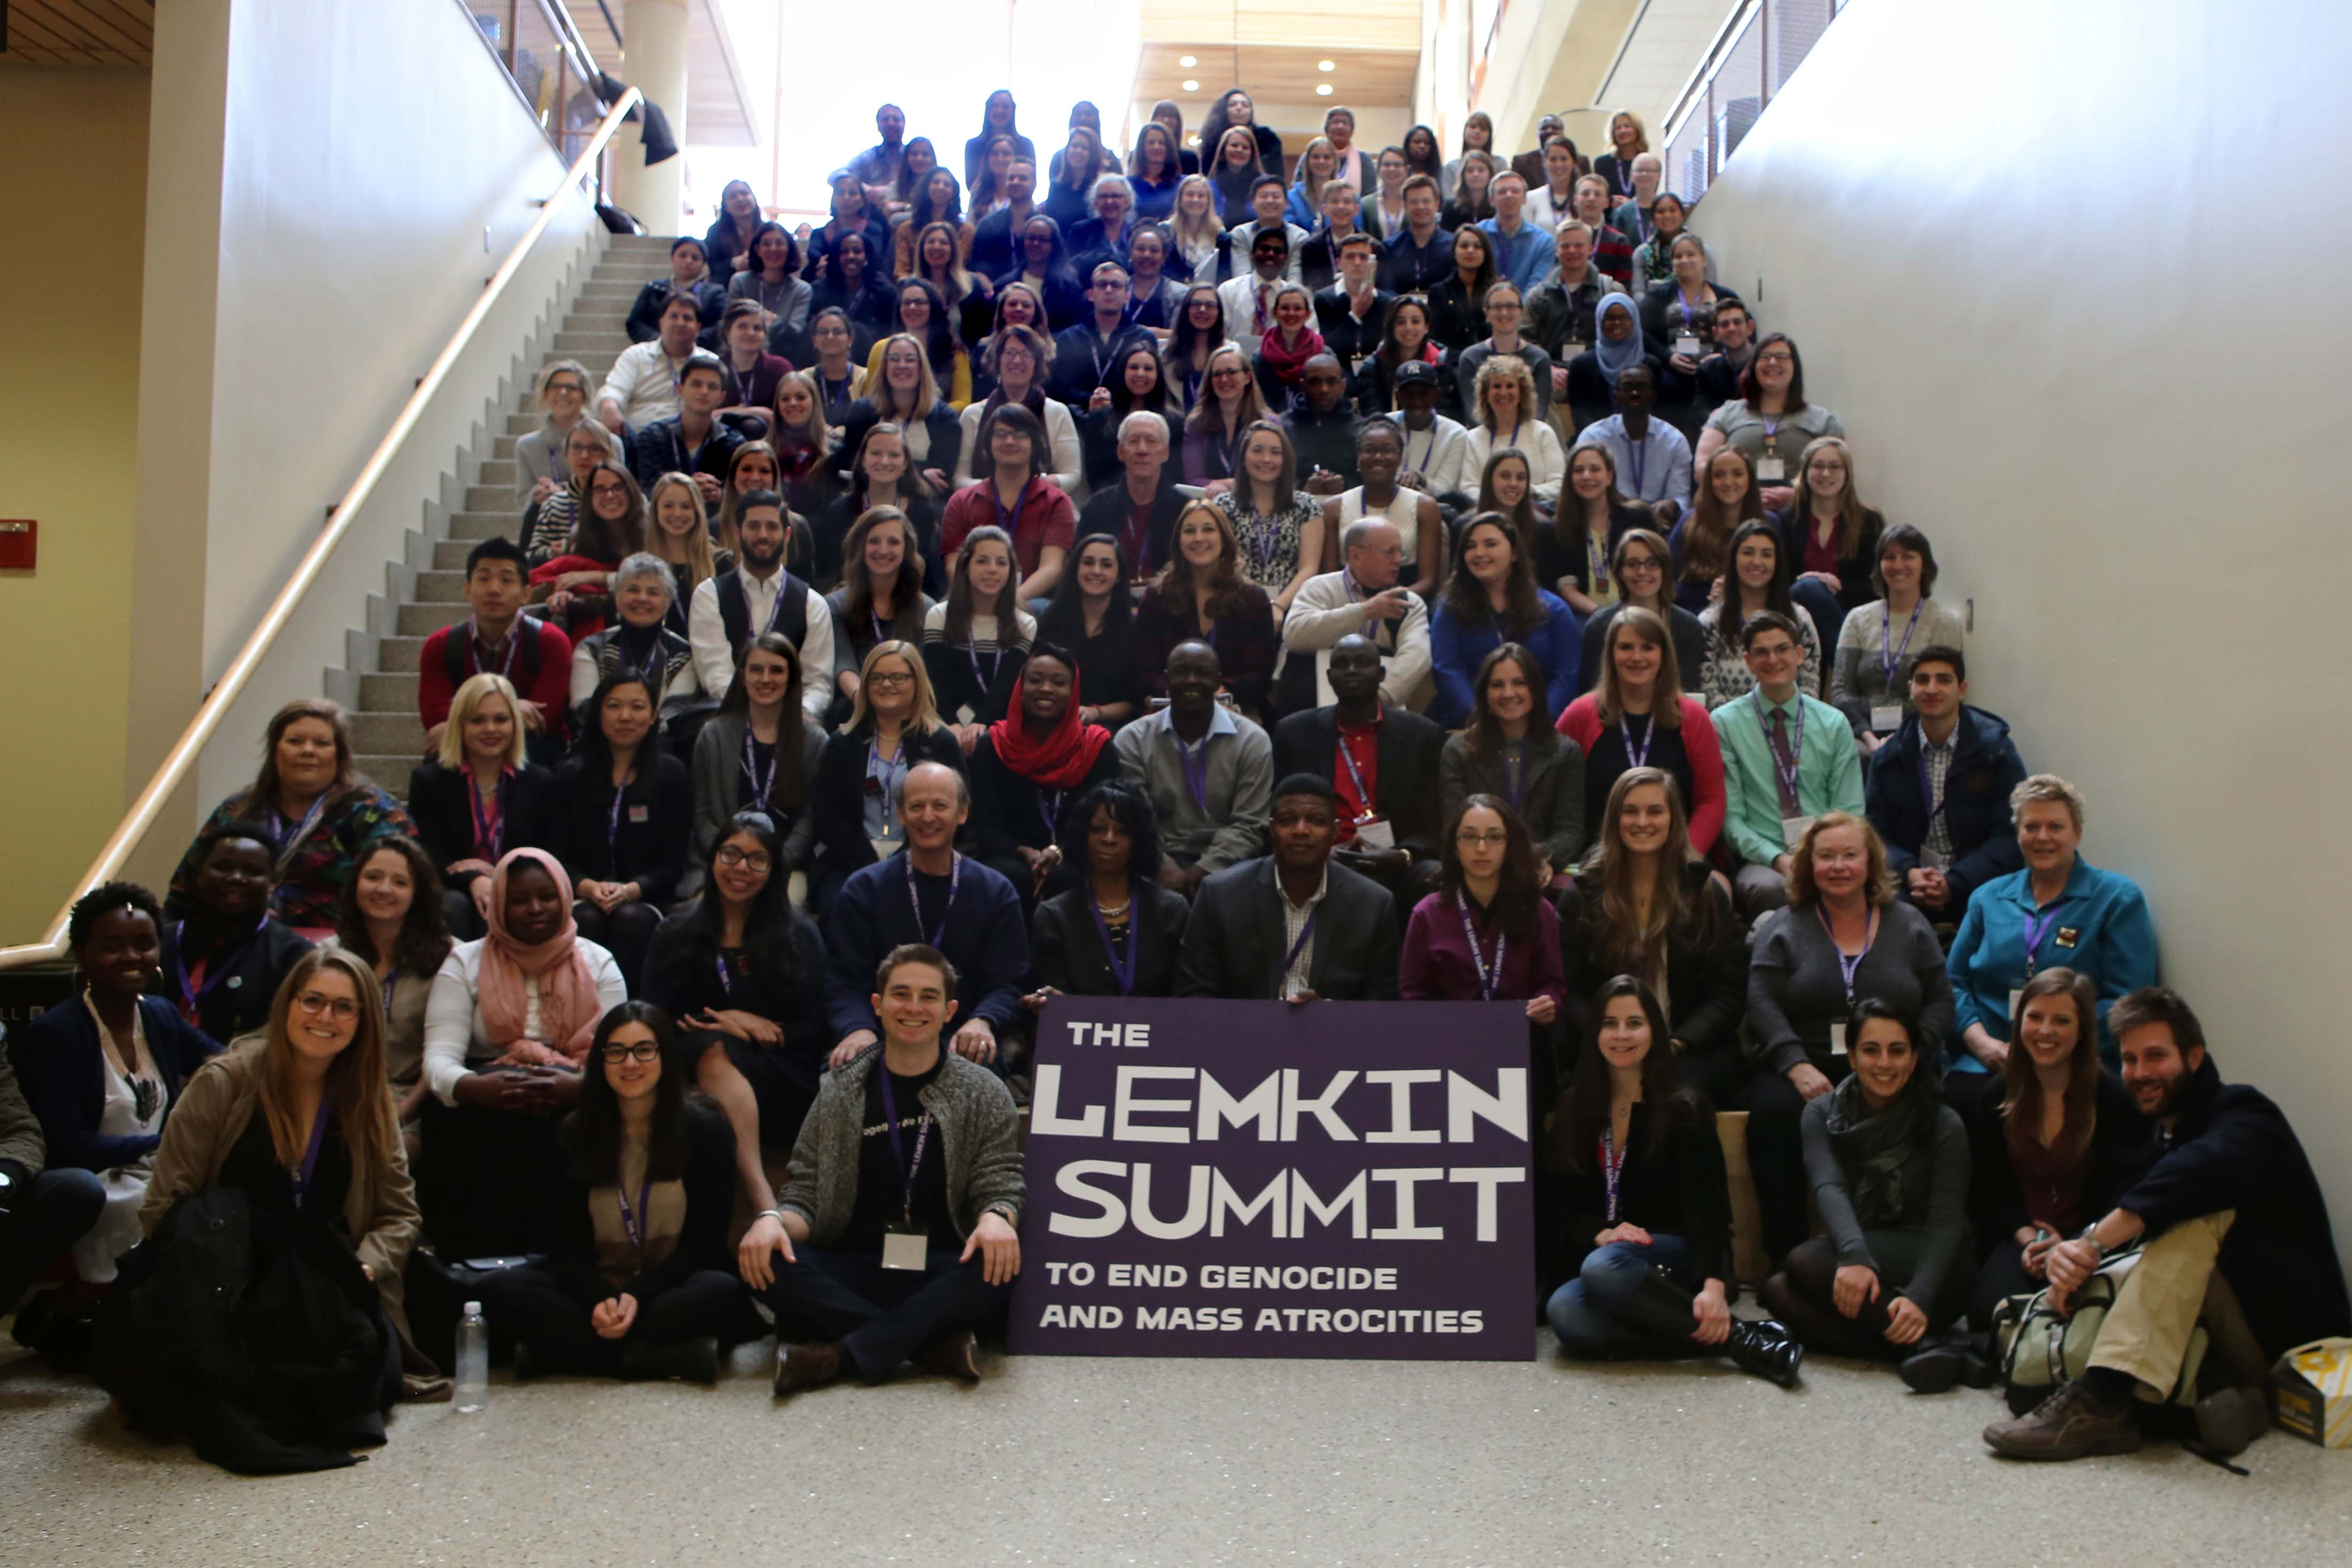 Advocates Take Action in D.C. for 2nd Lemkin Summit